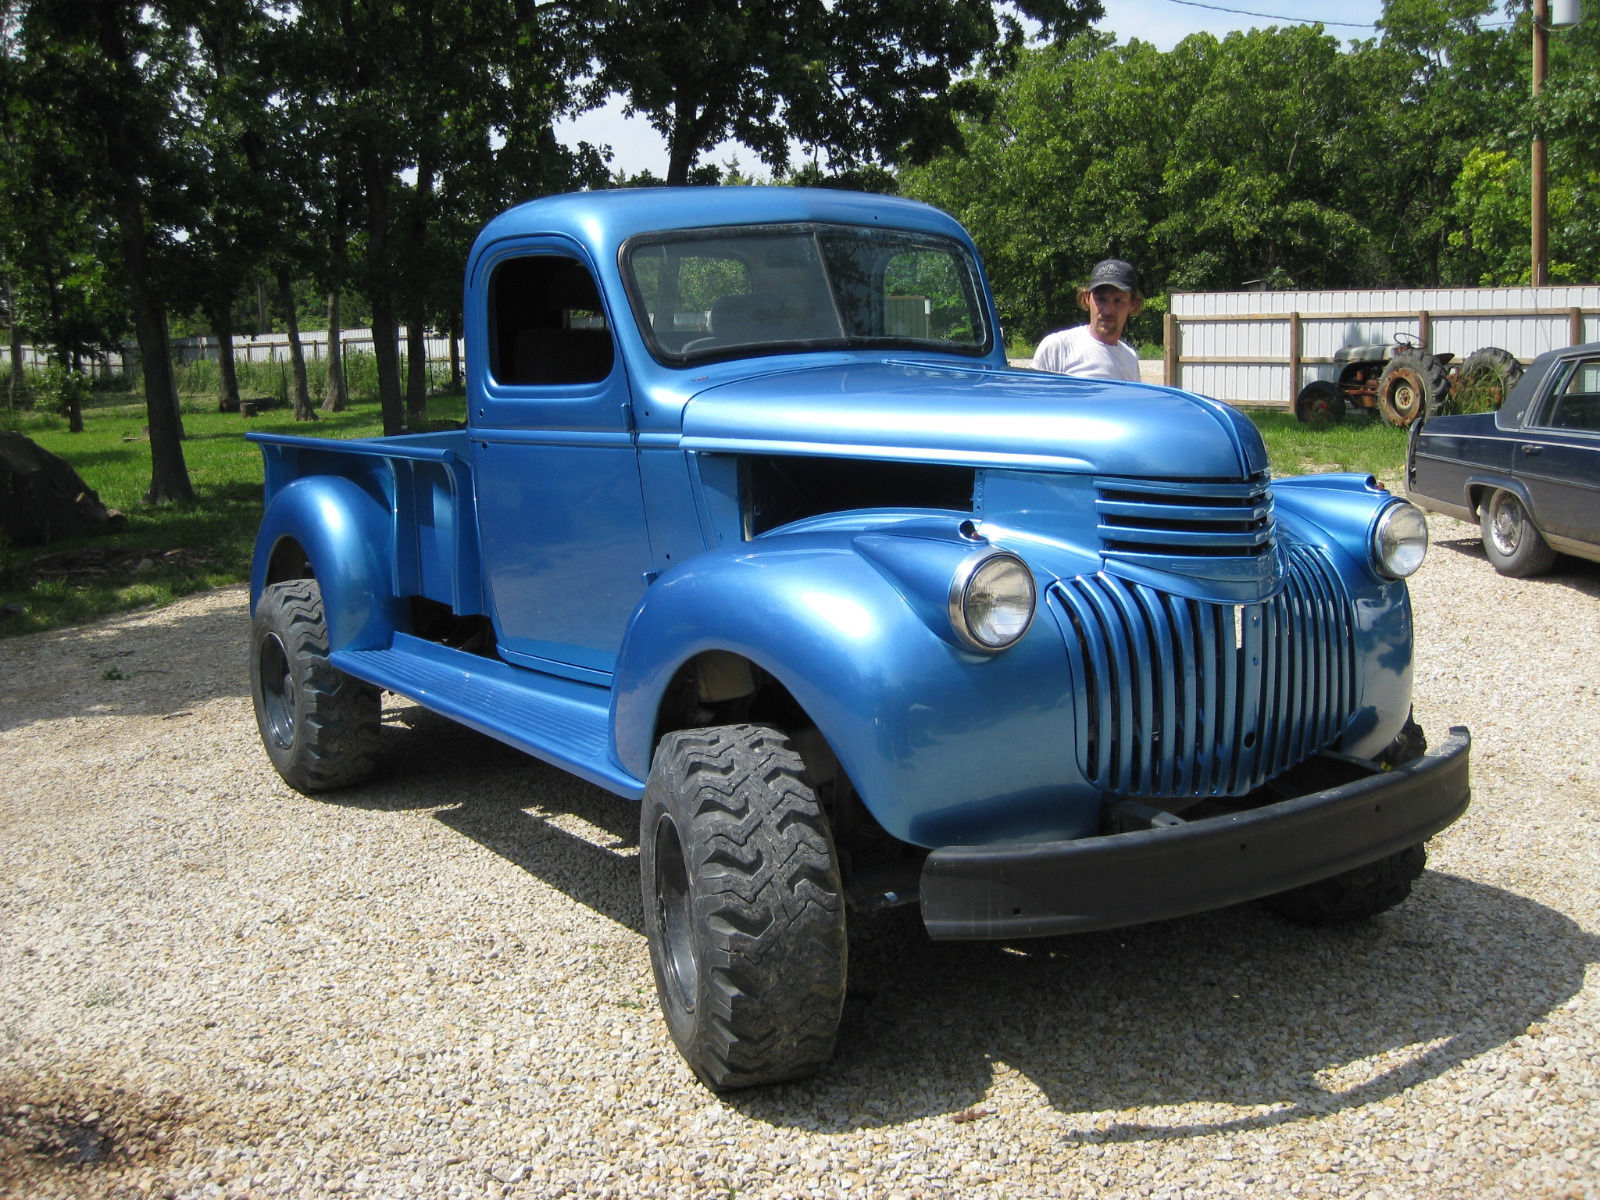 1946-chevy-truck-4x4-for-sale-2016-06-18